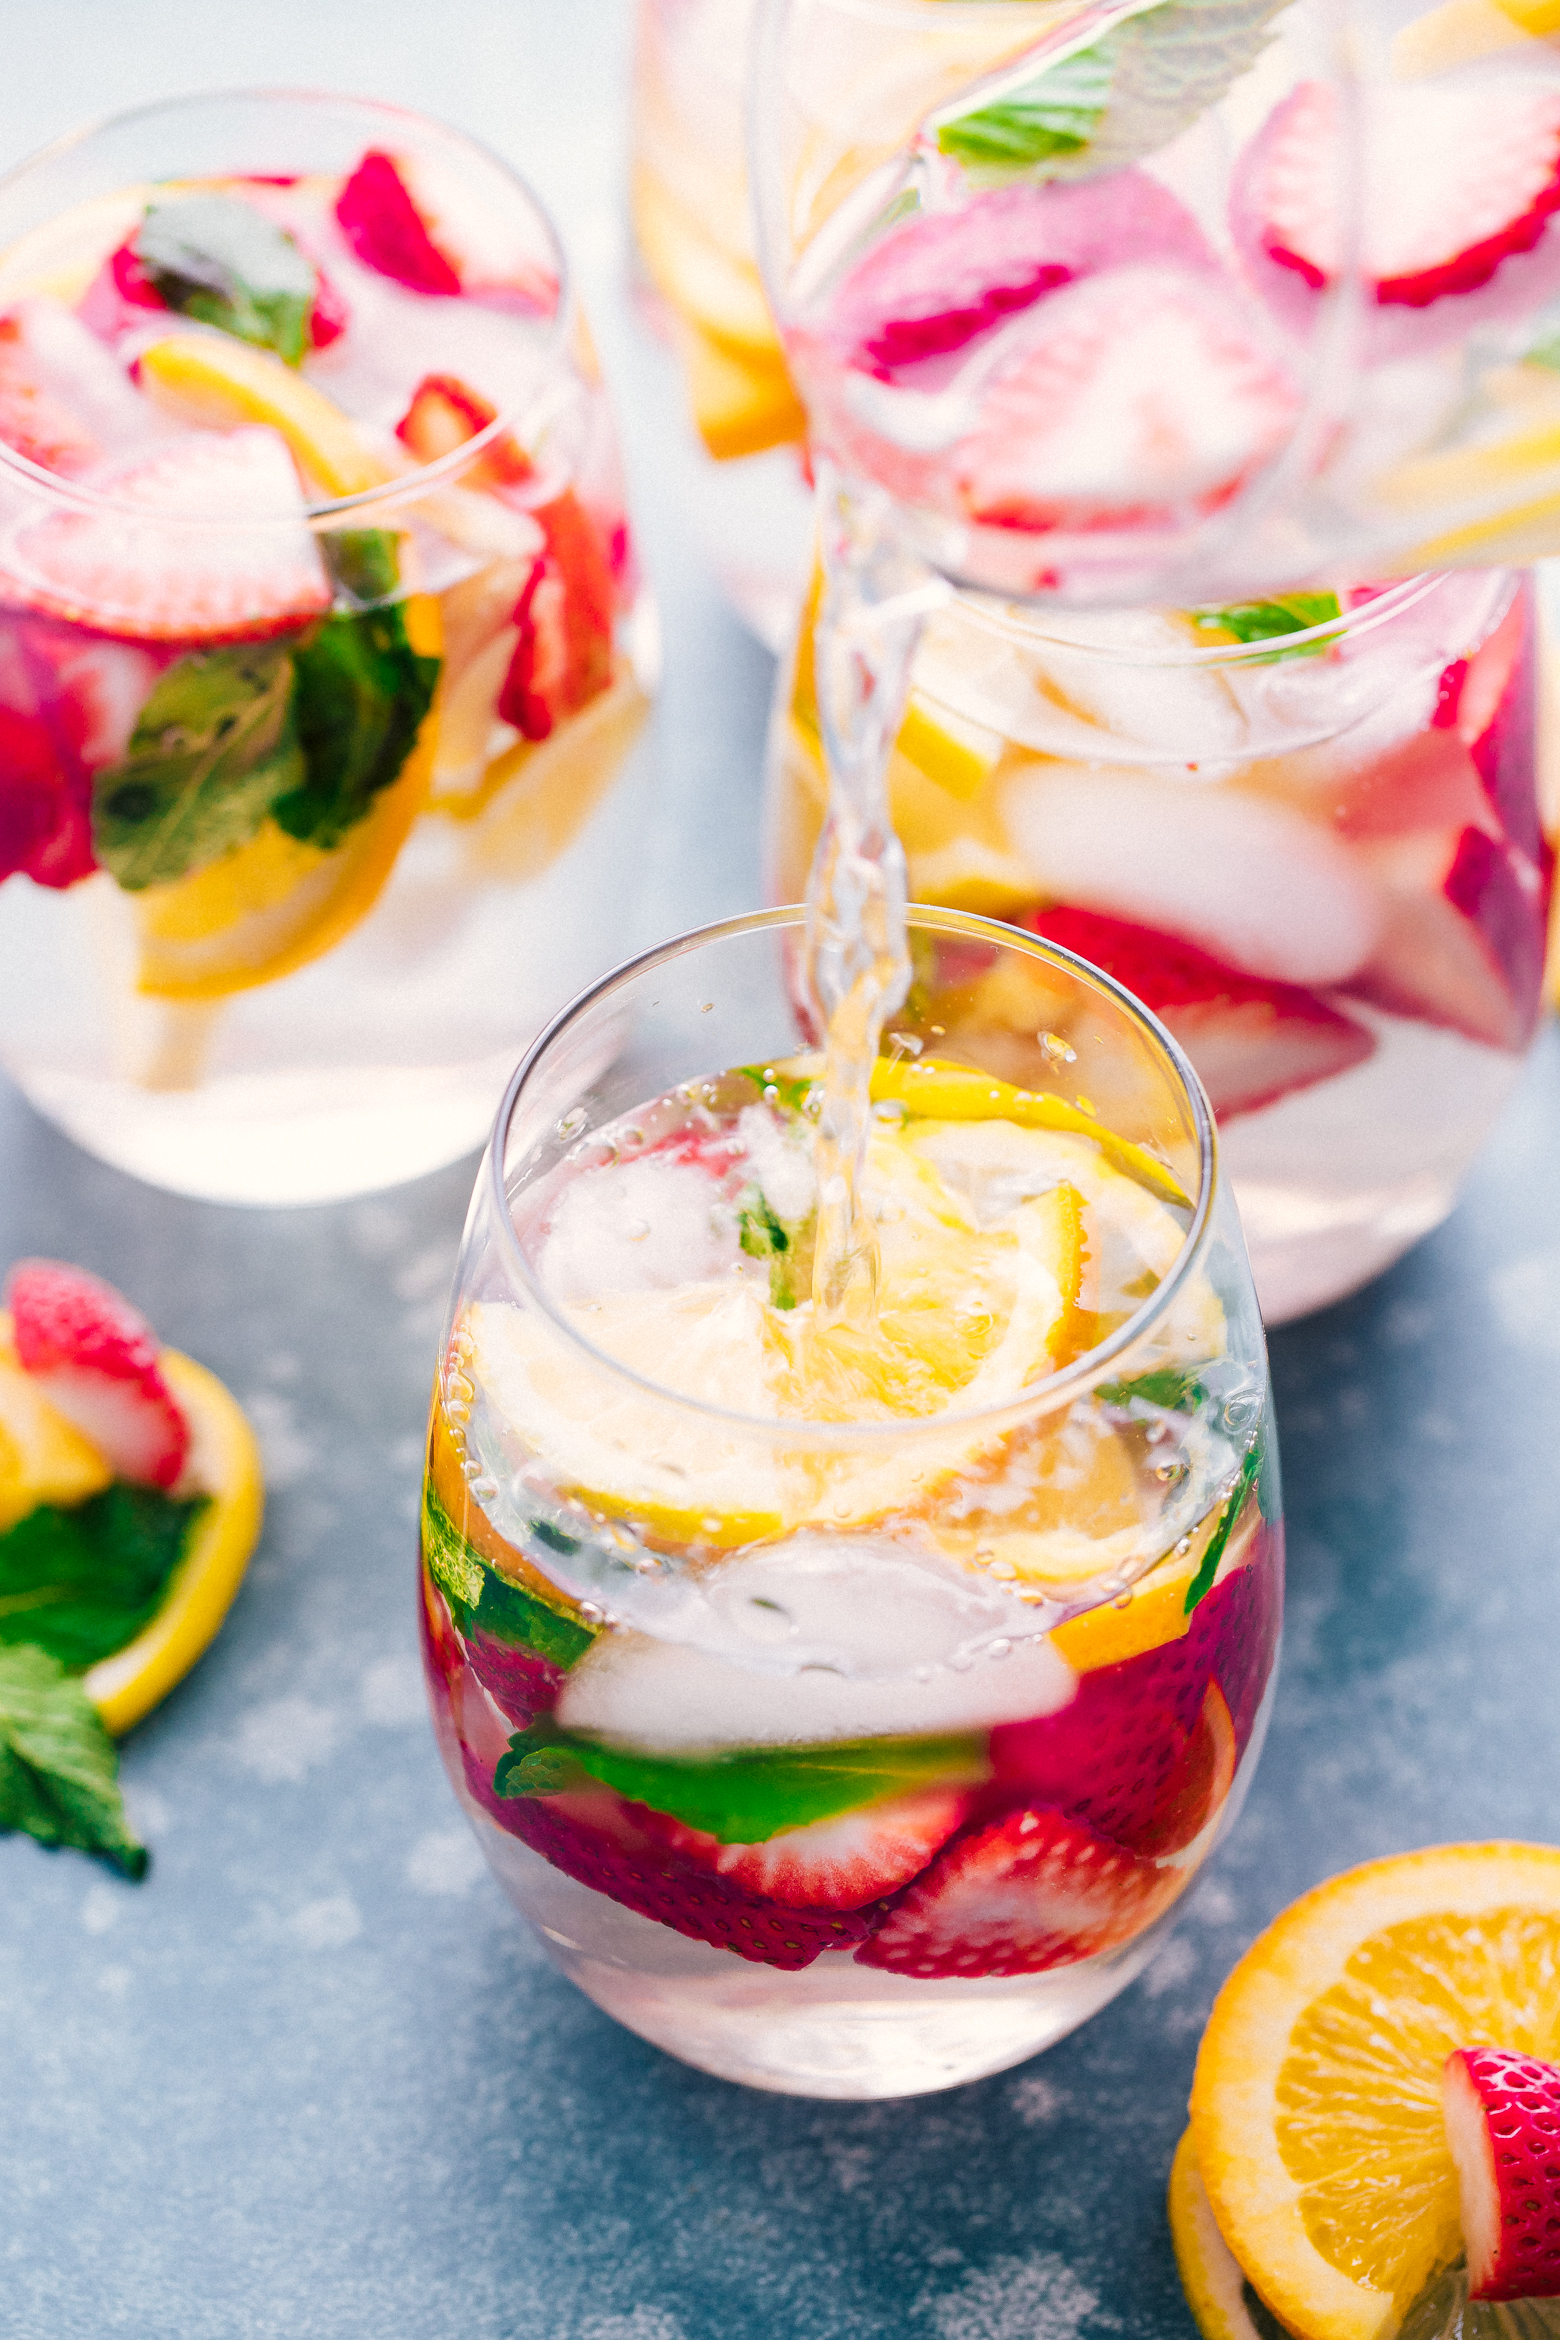 Detox Water being poured into a glass with strawberries, lemon, and mint for a healthy burst to your body, by The Food Cafe.